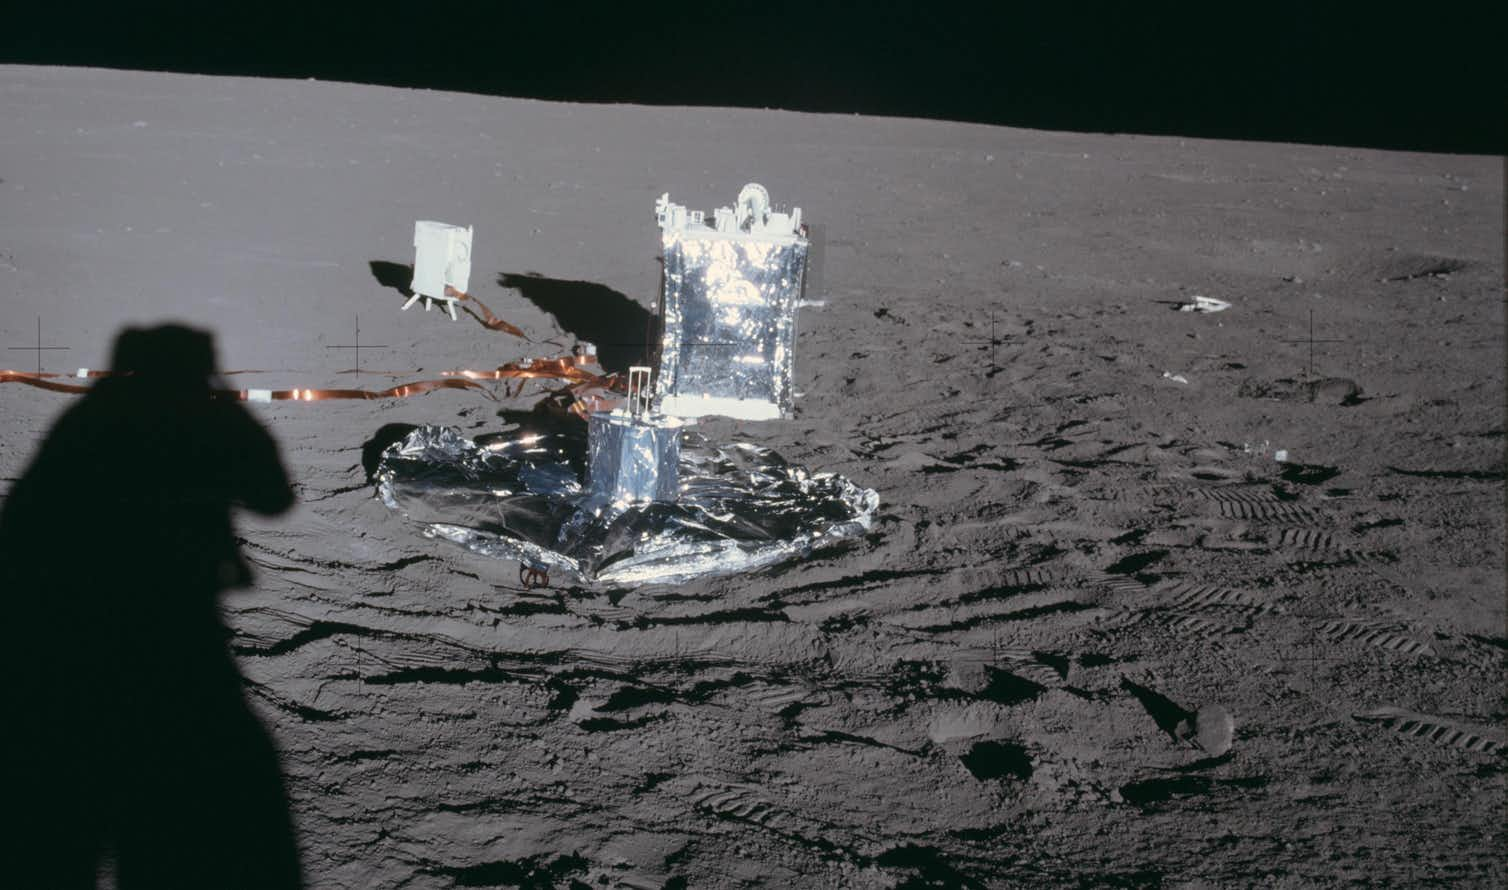 The seismometer deployed on the moon by Apollo 14 (nearest of the three instruments). Photo credit: NASA